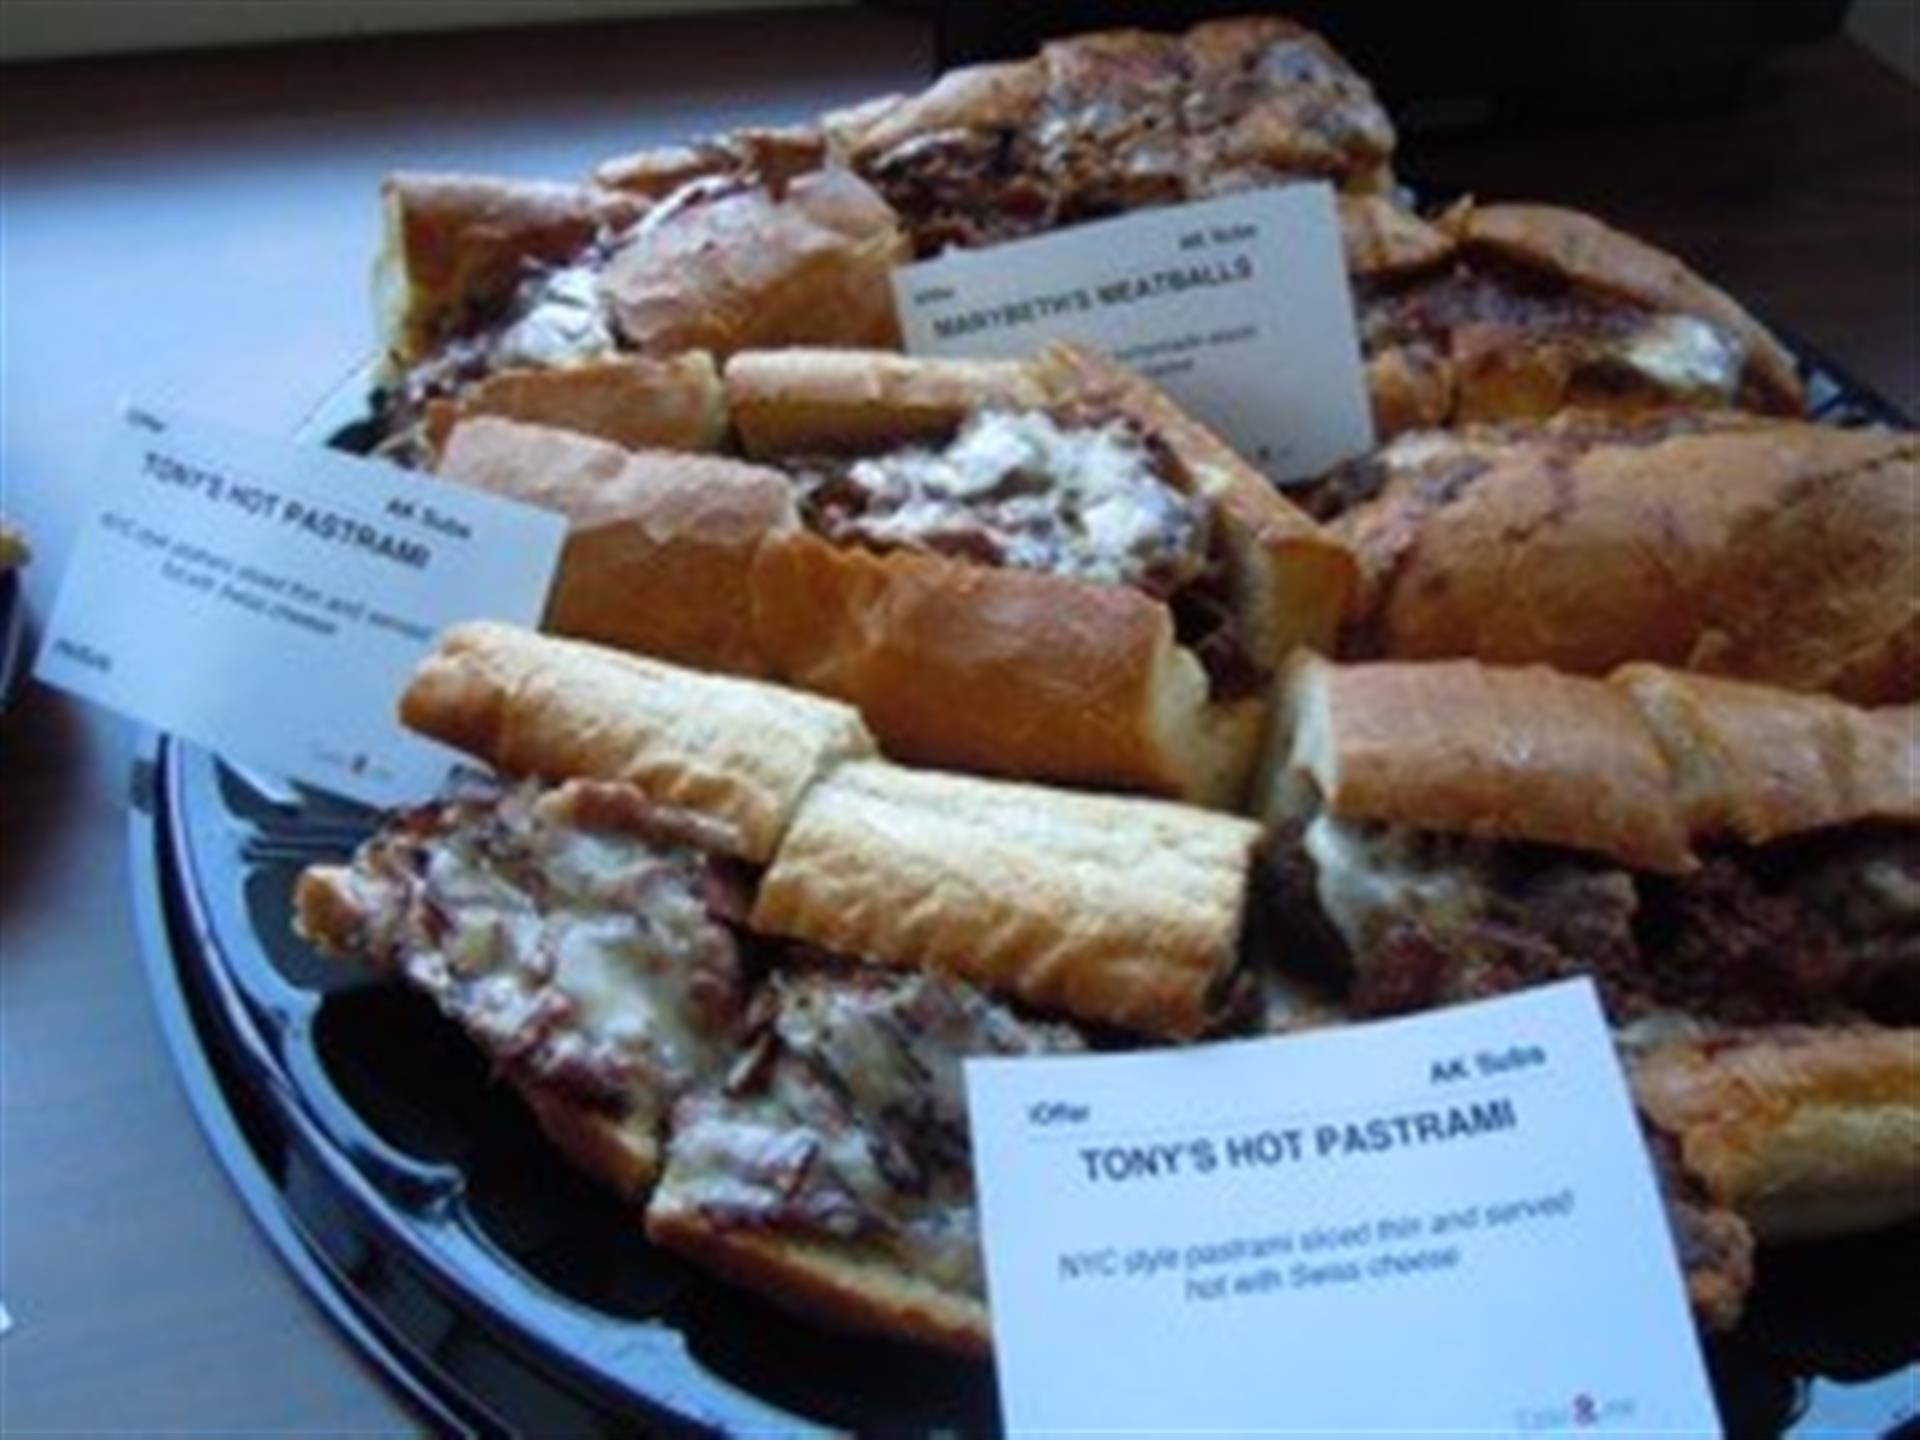 Pastrami and meatball sandwiches on black tray